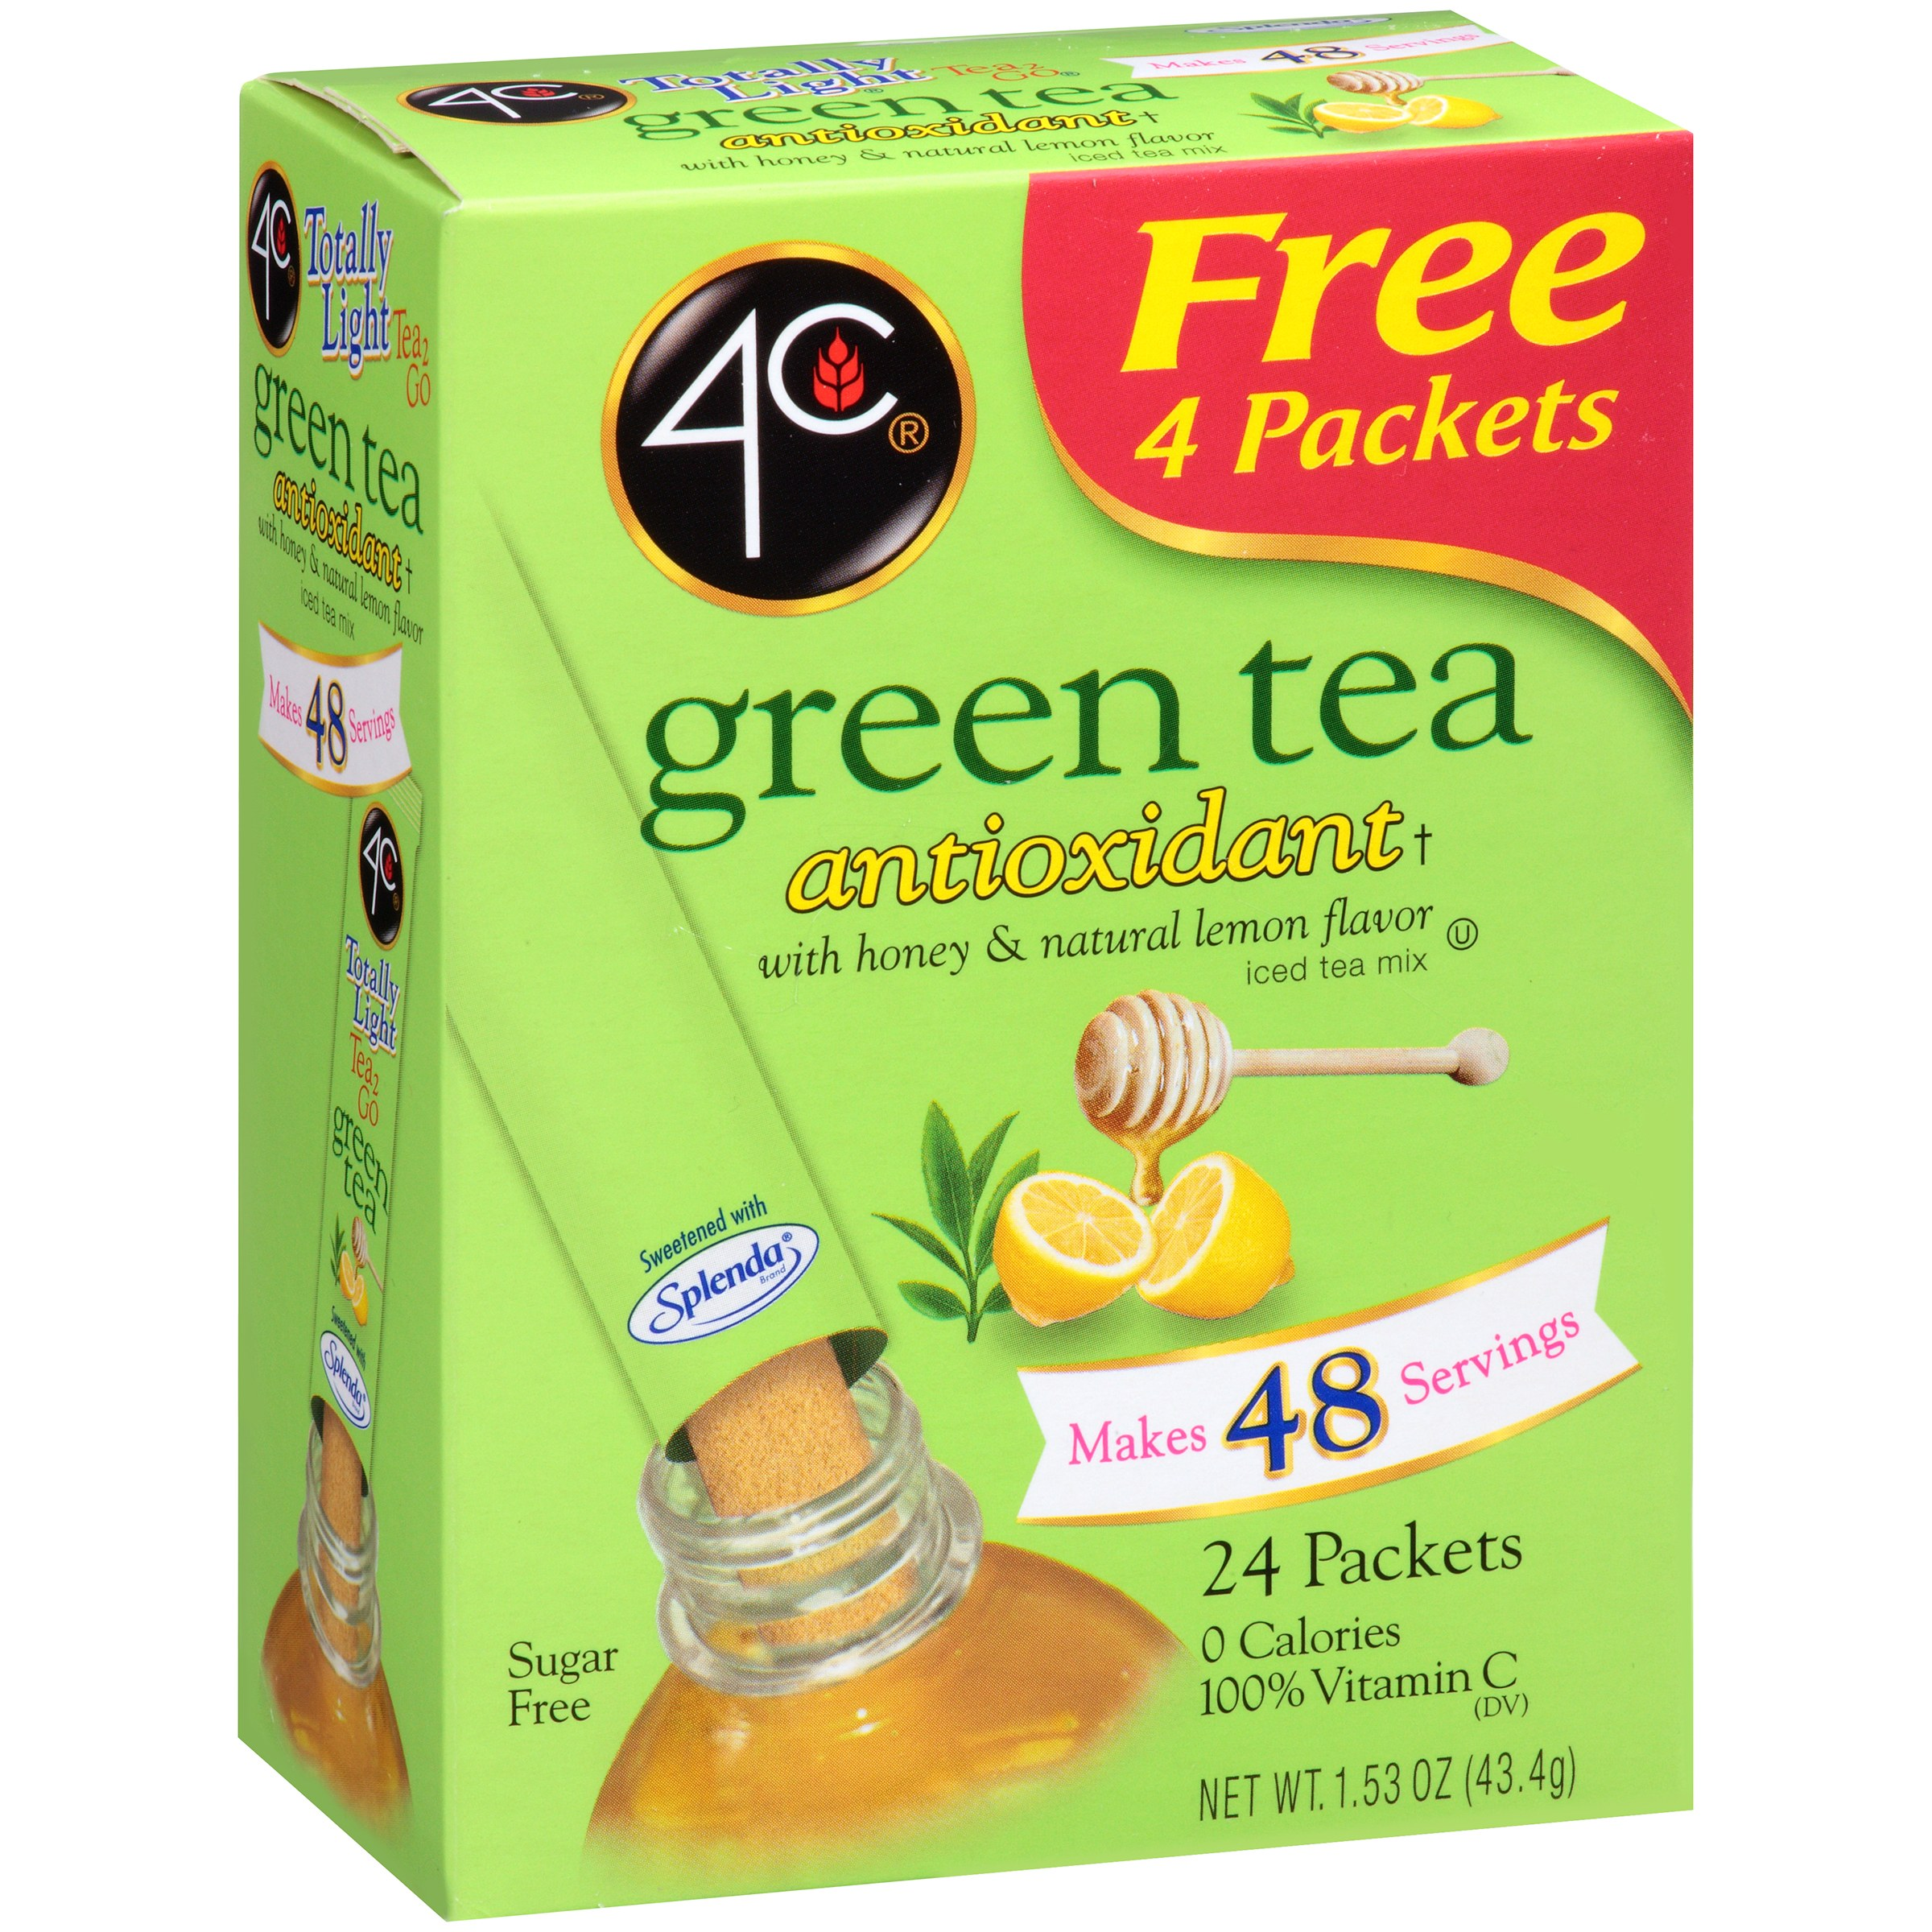 4C Totally Light Drink Mix, Green Tea, 1.53 Oz, 20 Packets, 1 Count